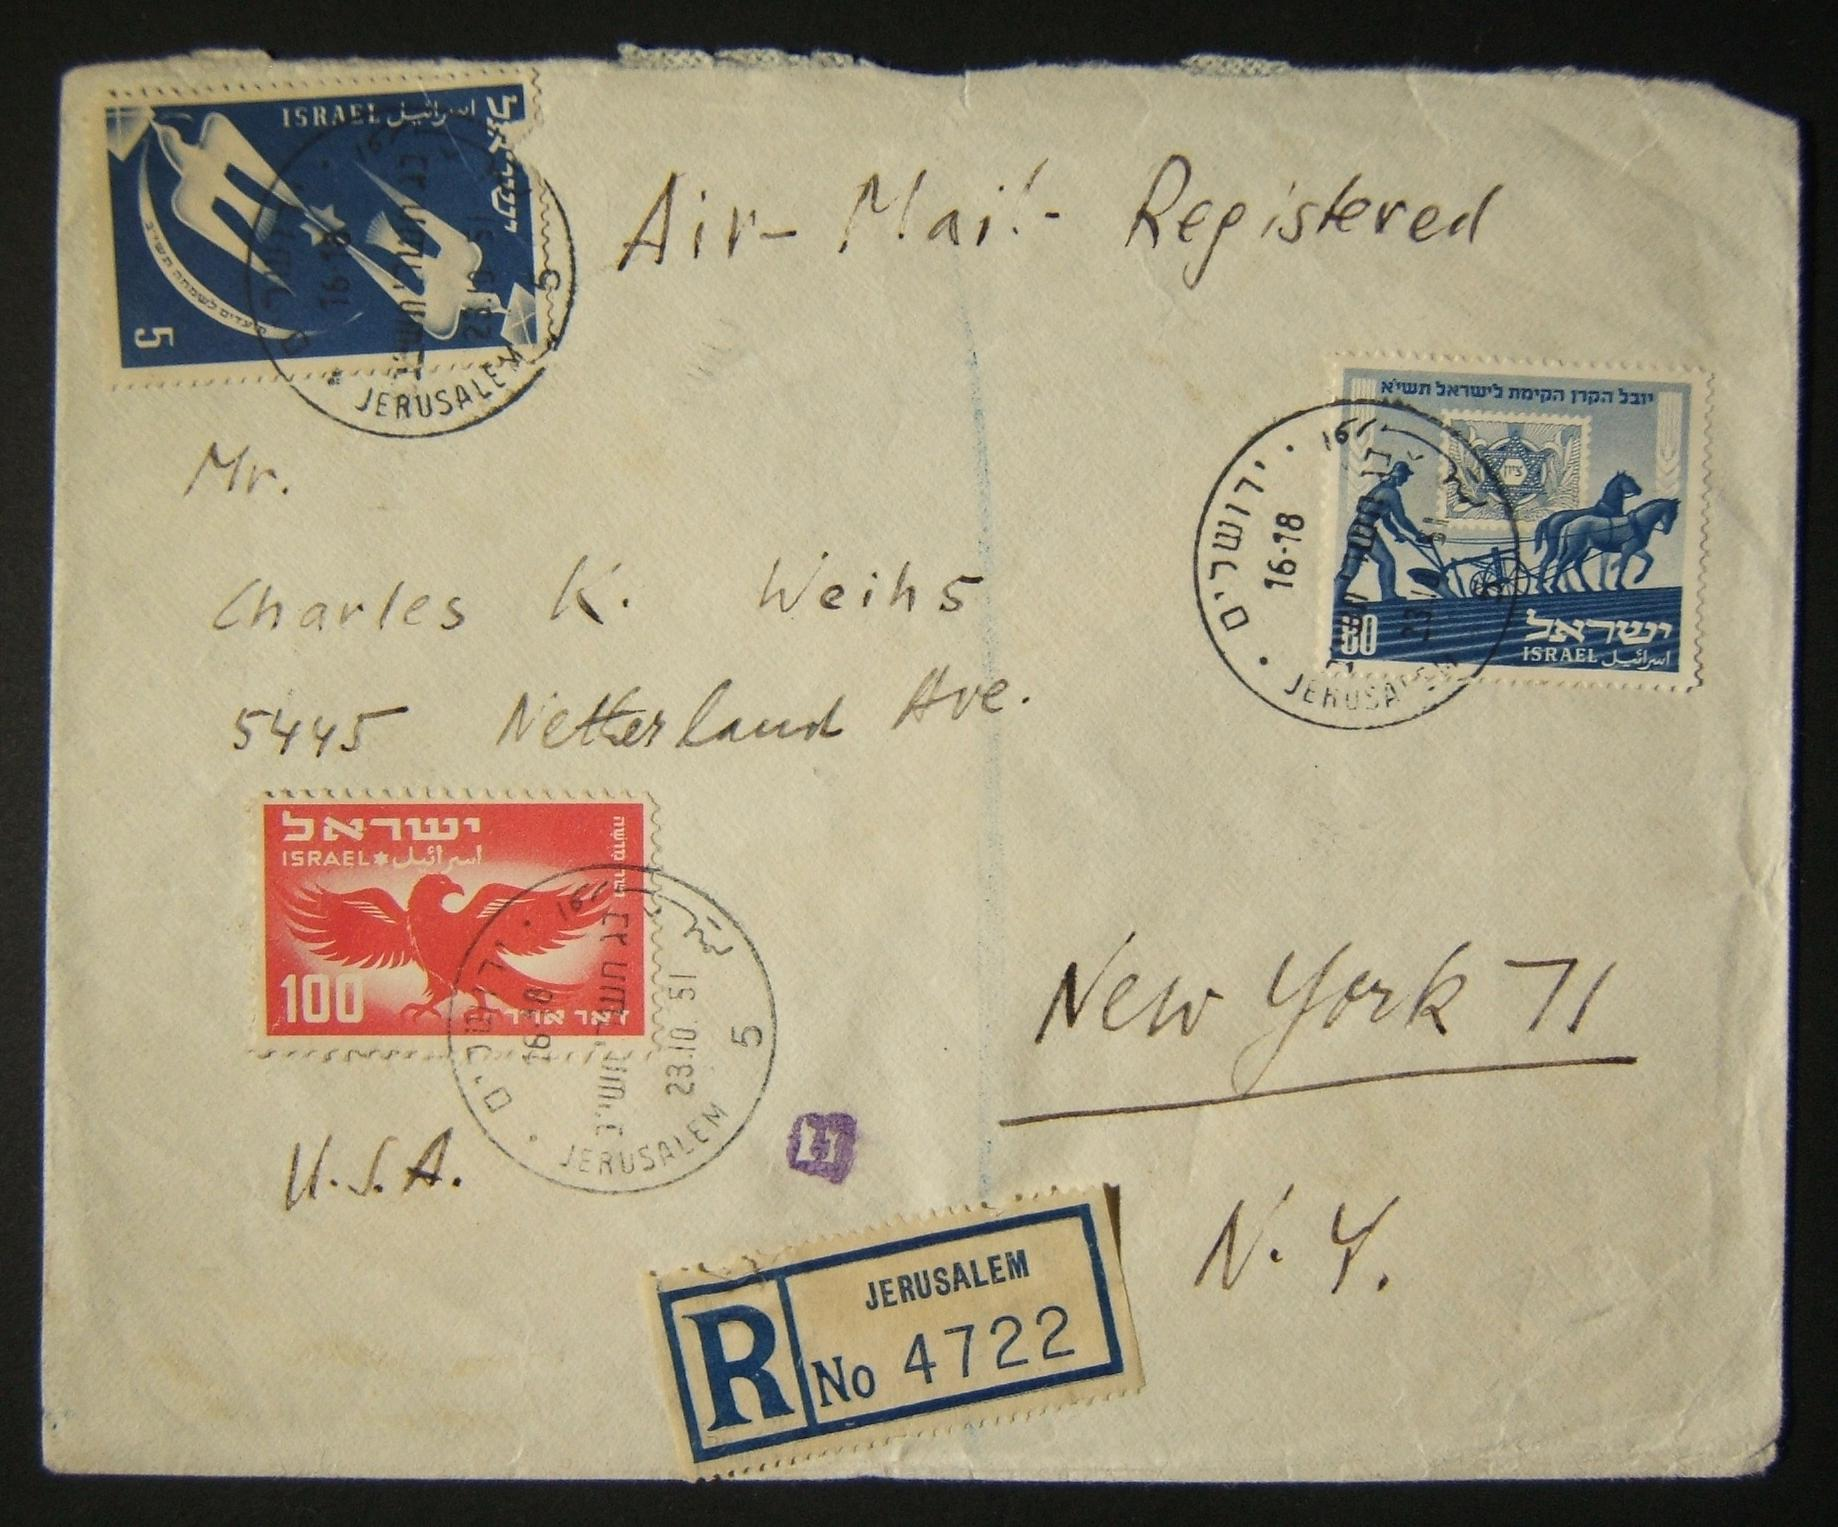 1950 1st airmail / PO's, rates & routes: 23-10-51 registered airmail cover ex JERUSALEM (return addressed Ramat Gan) to NYC franked 185pr at the FA-2a period rate (80pr letter + 25